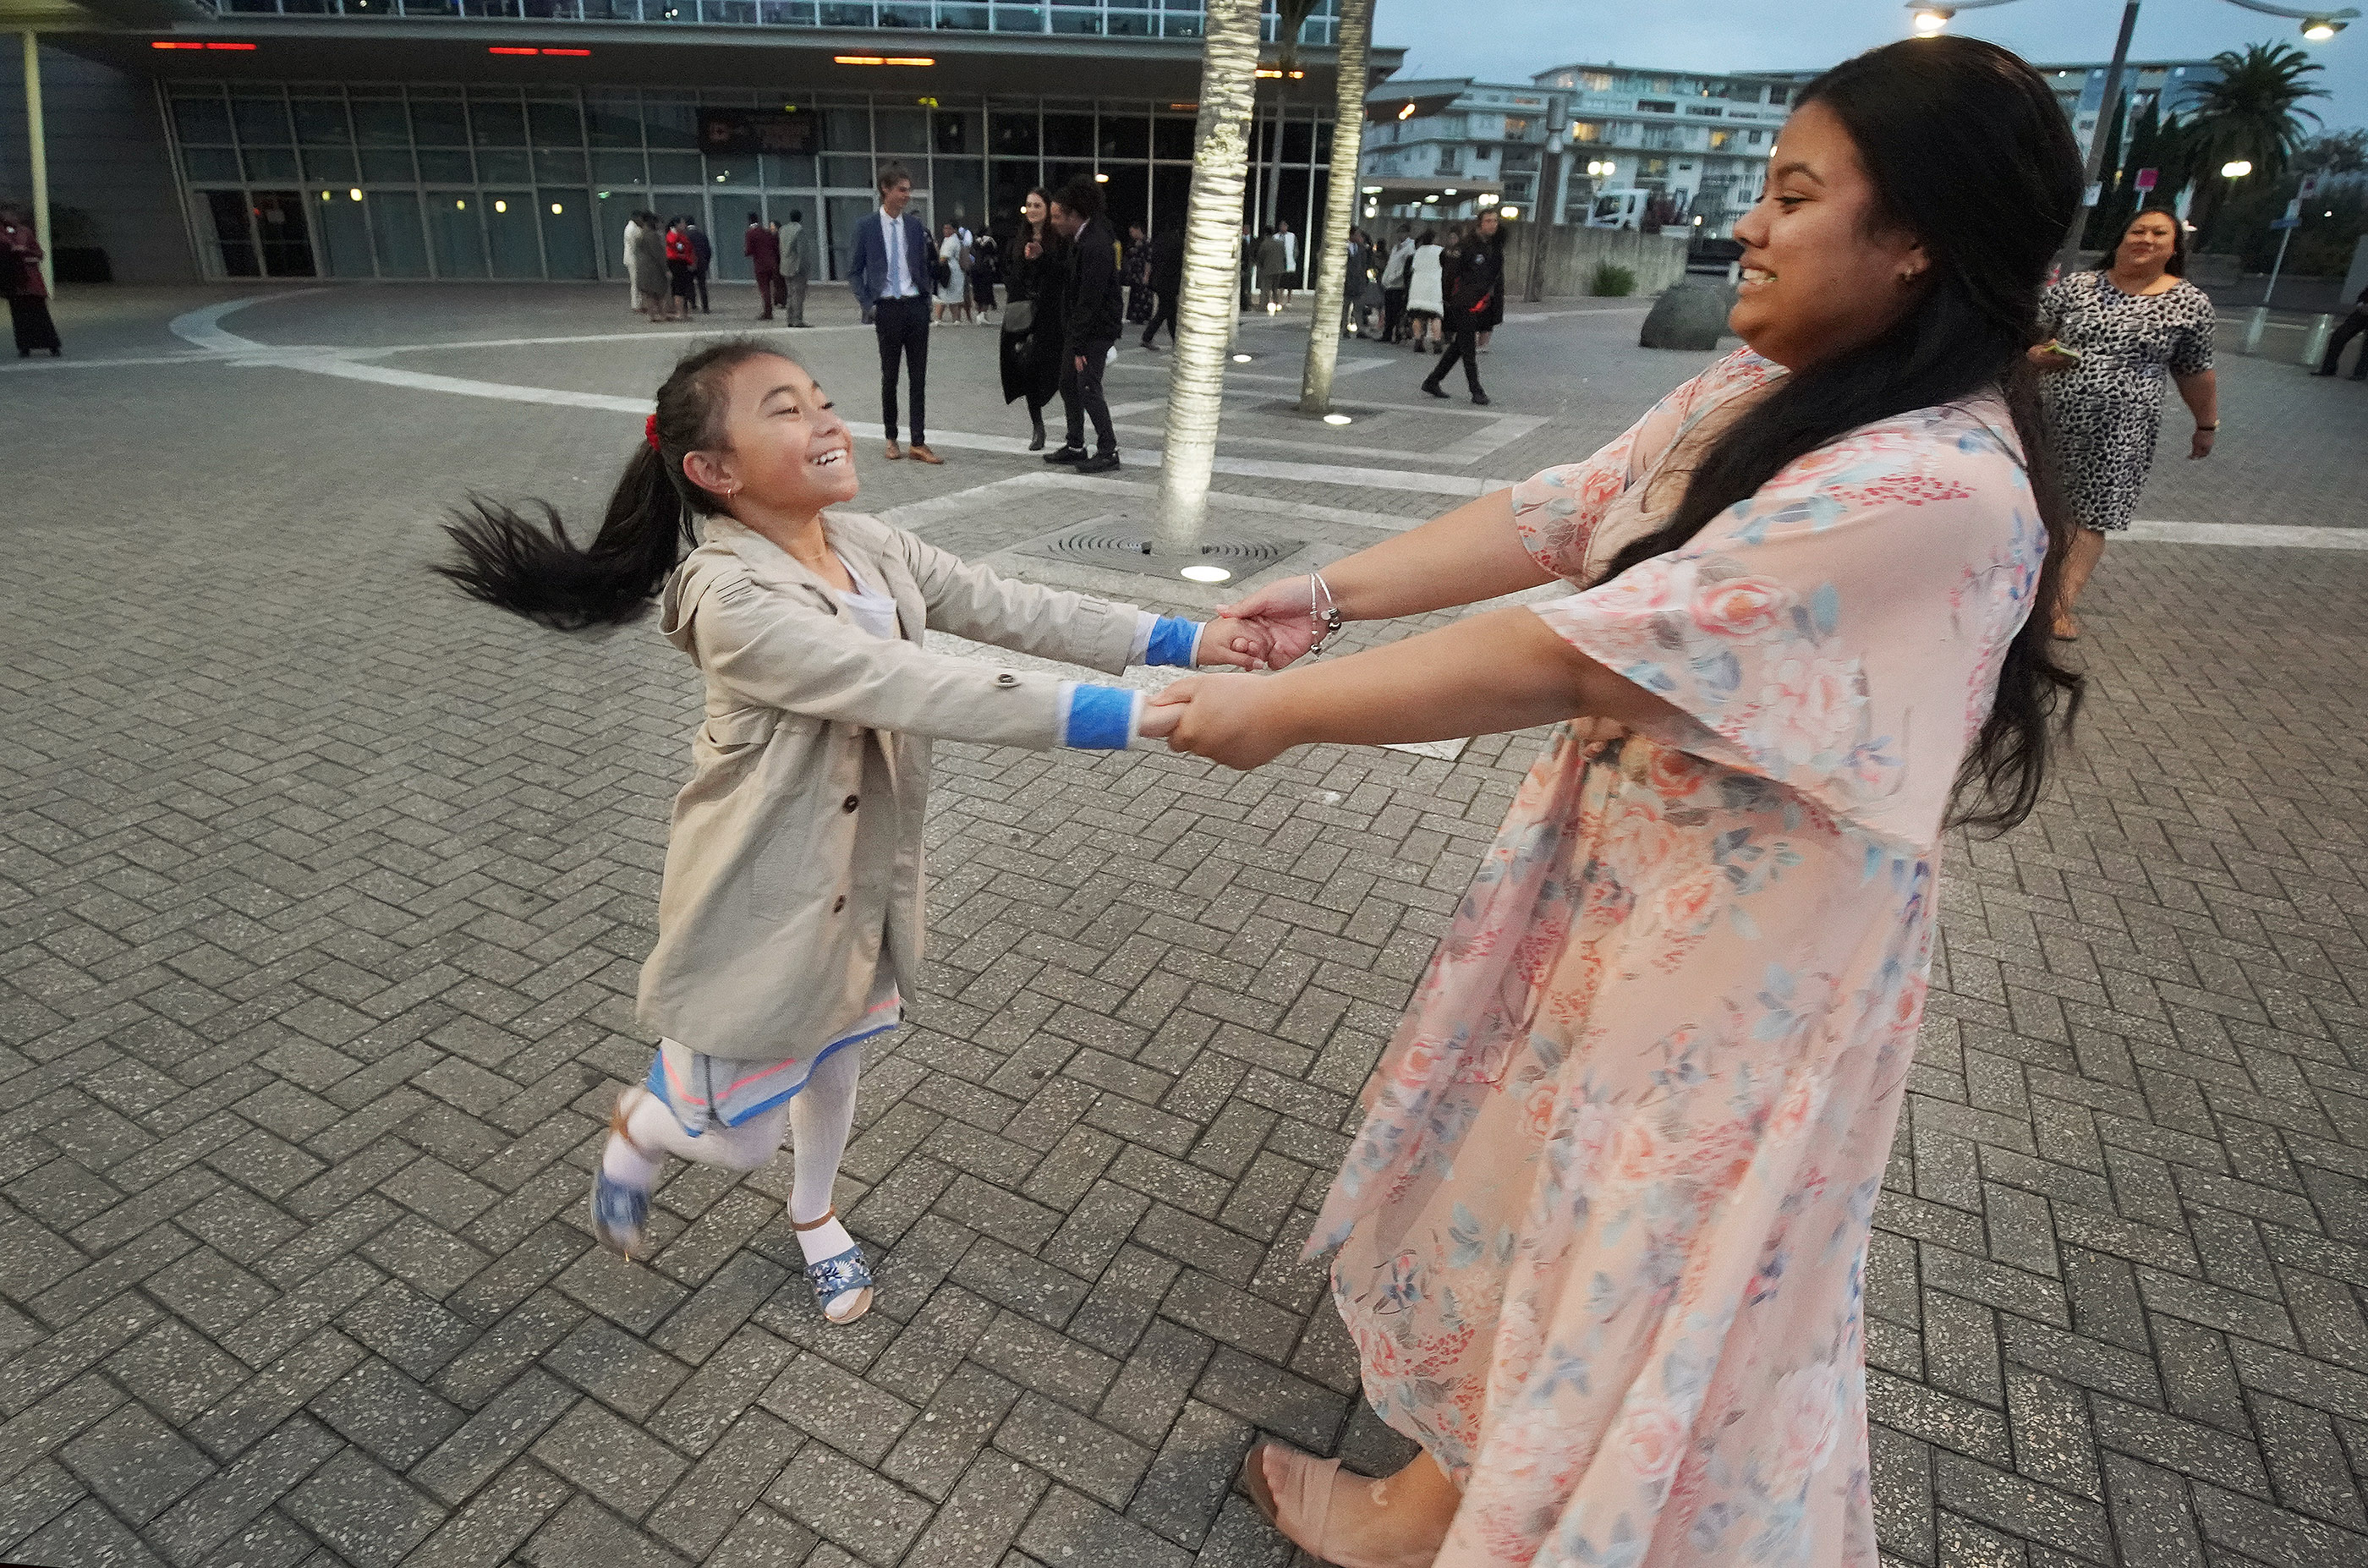 Chunte Joseph, right, dances with Jahrian Siliva prior to a devotional with President Russell M. Nelson of The Church of Jesus Christ of Latter-day Saints in Auckland, New Zealand, on May 21, 2019.